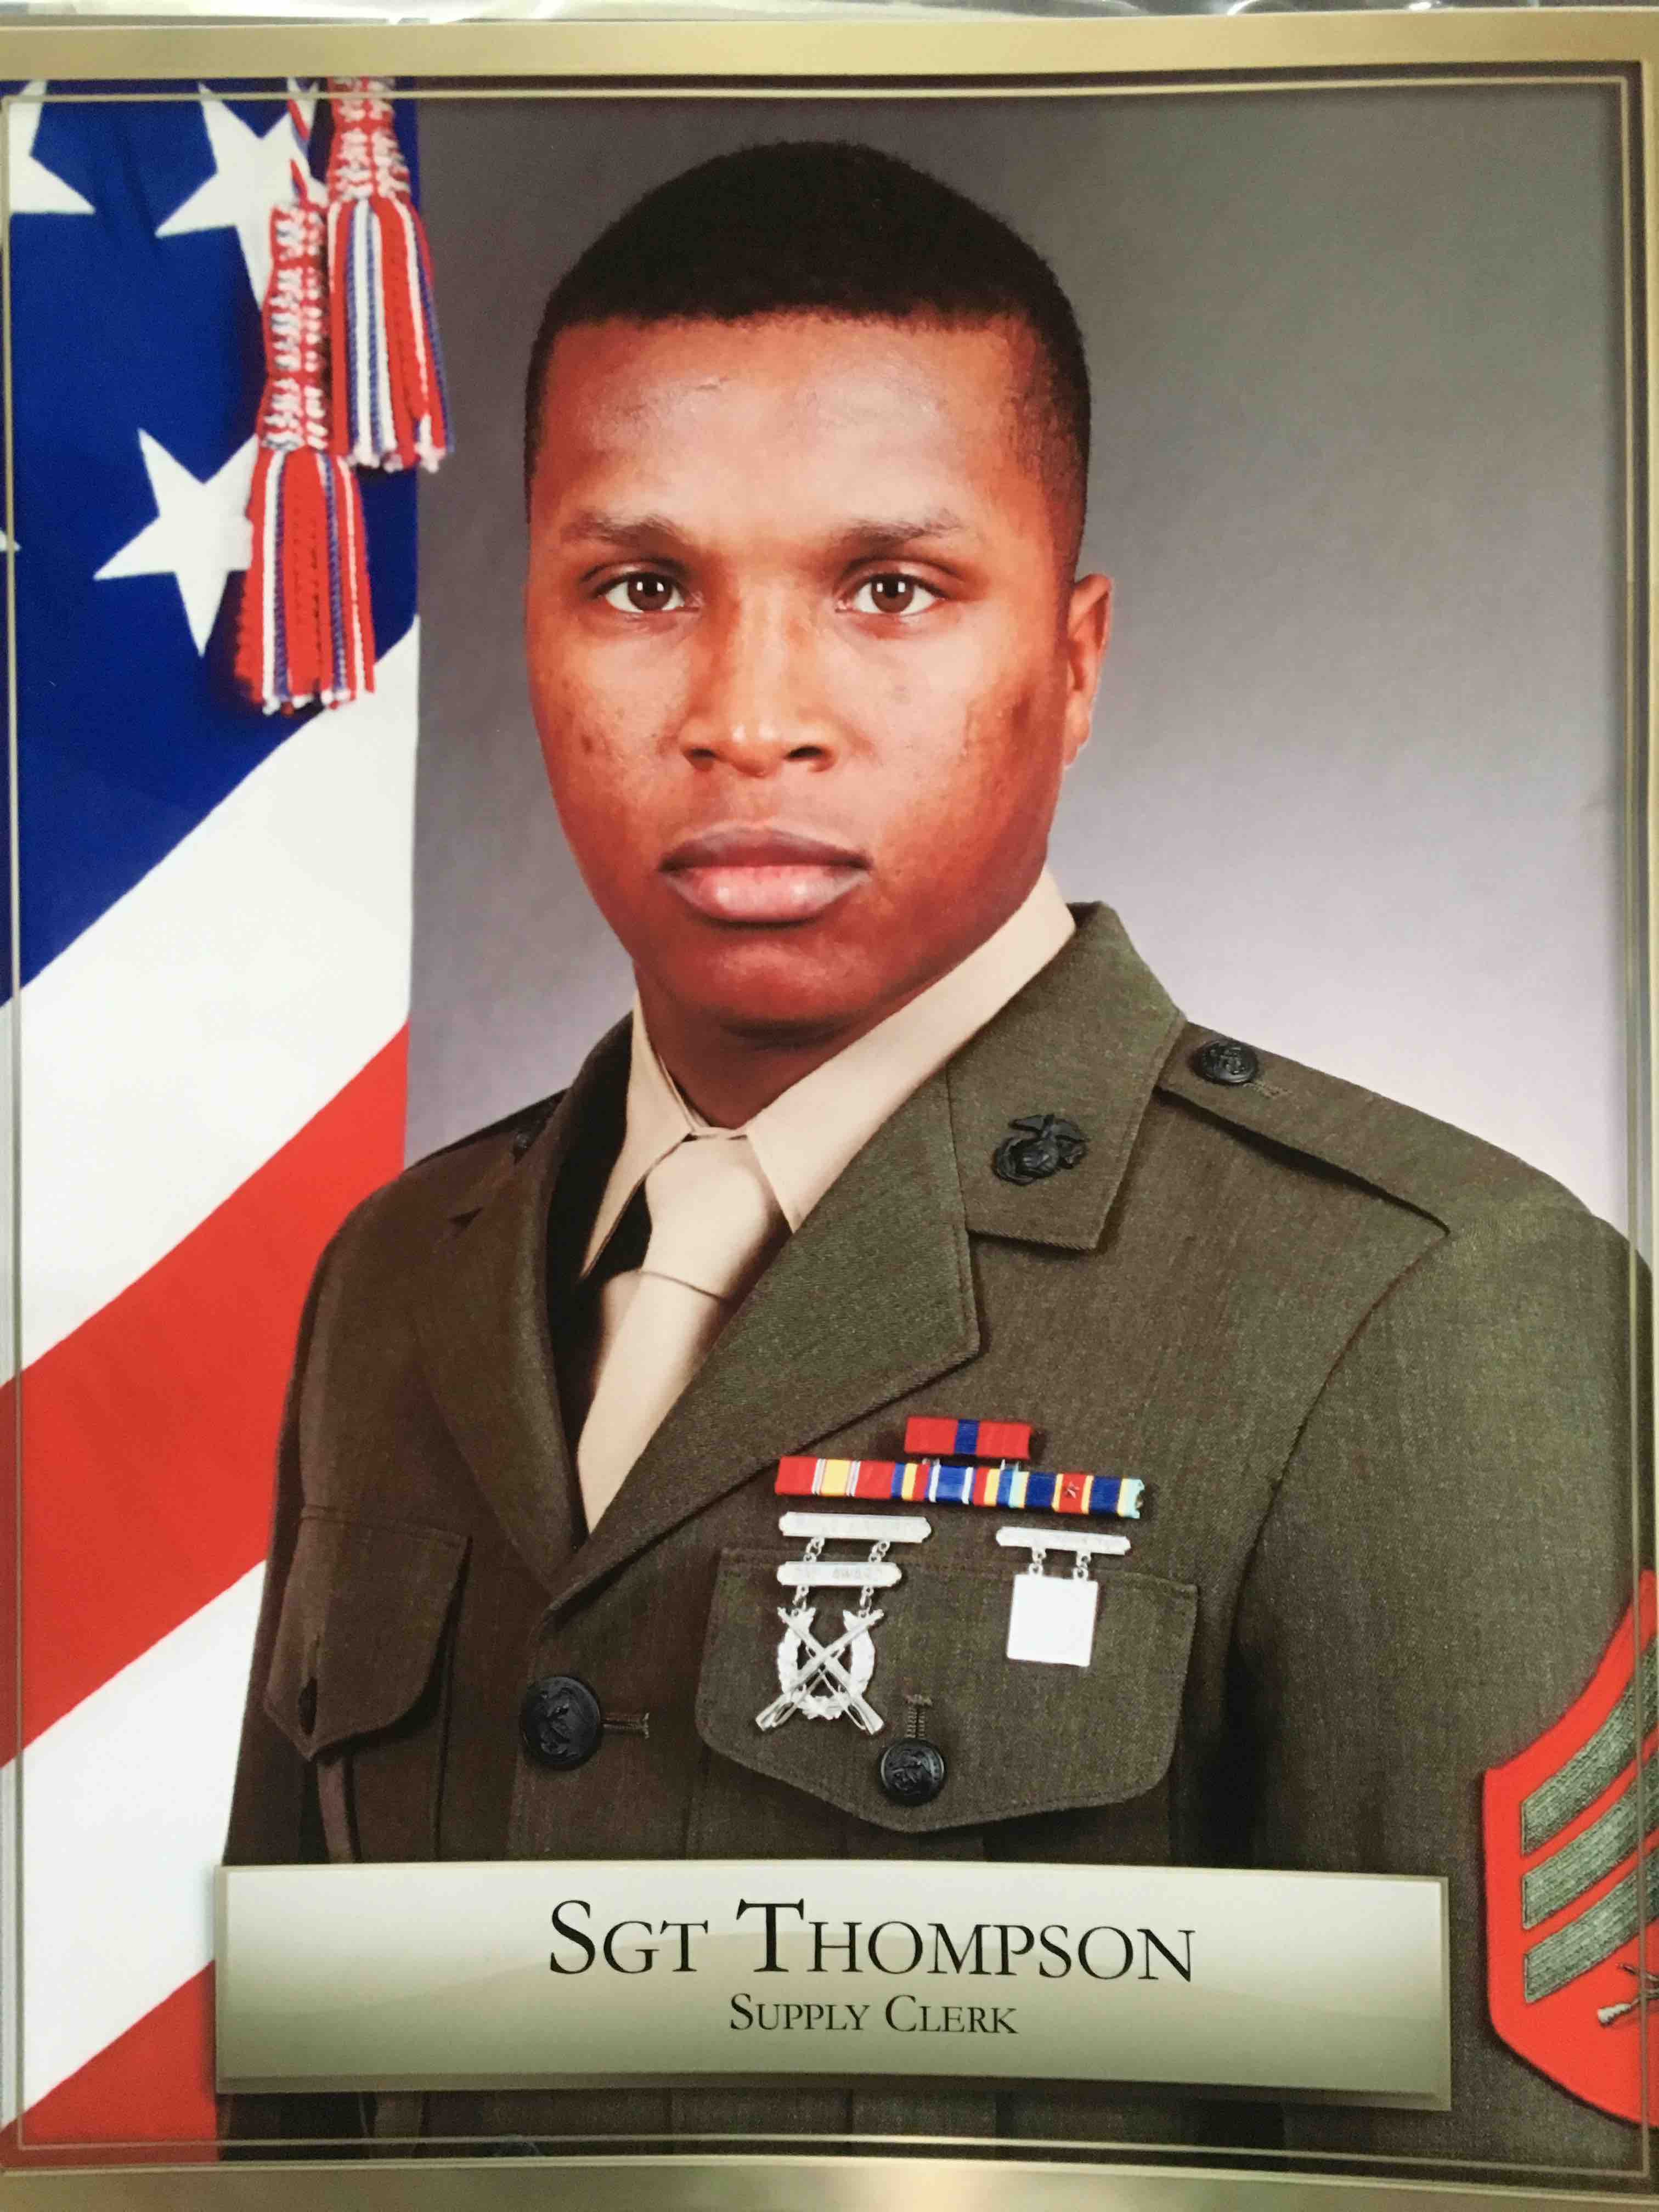 fundraiser by carlson thompson usmc veteran car accident recovery